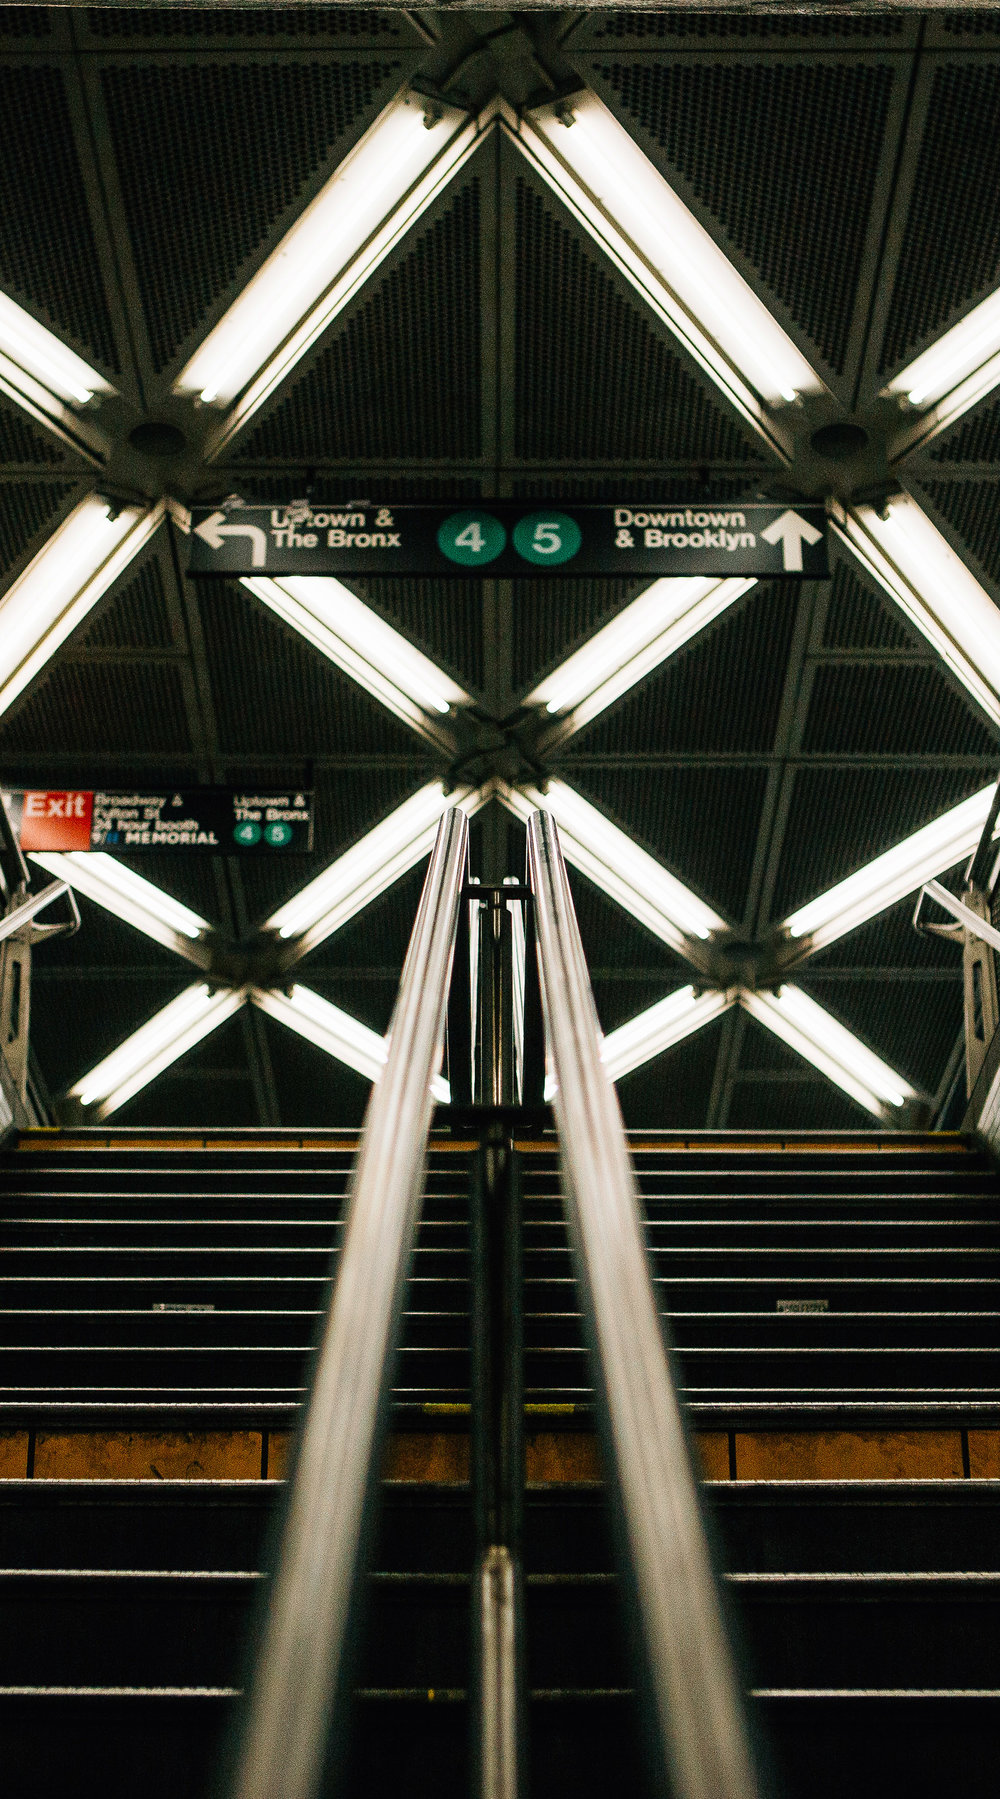 stairs to light rail